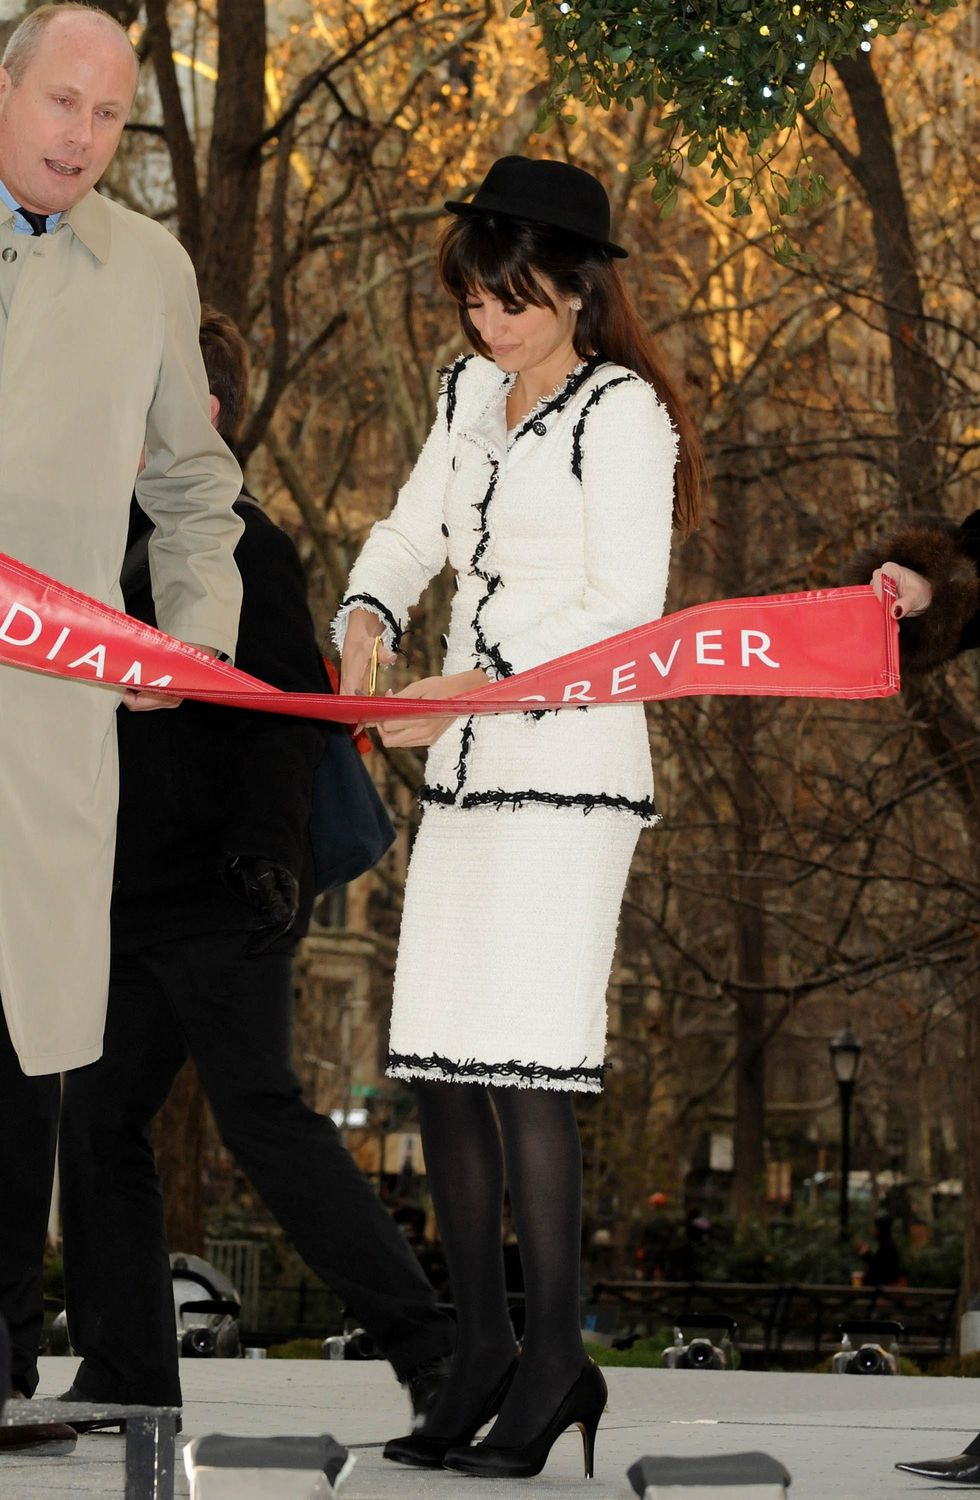 penelope-cruz-a-diamond-is-forever-unbreakable-kiss-mistletoe-installation-in-new-york-14